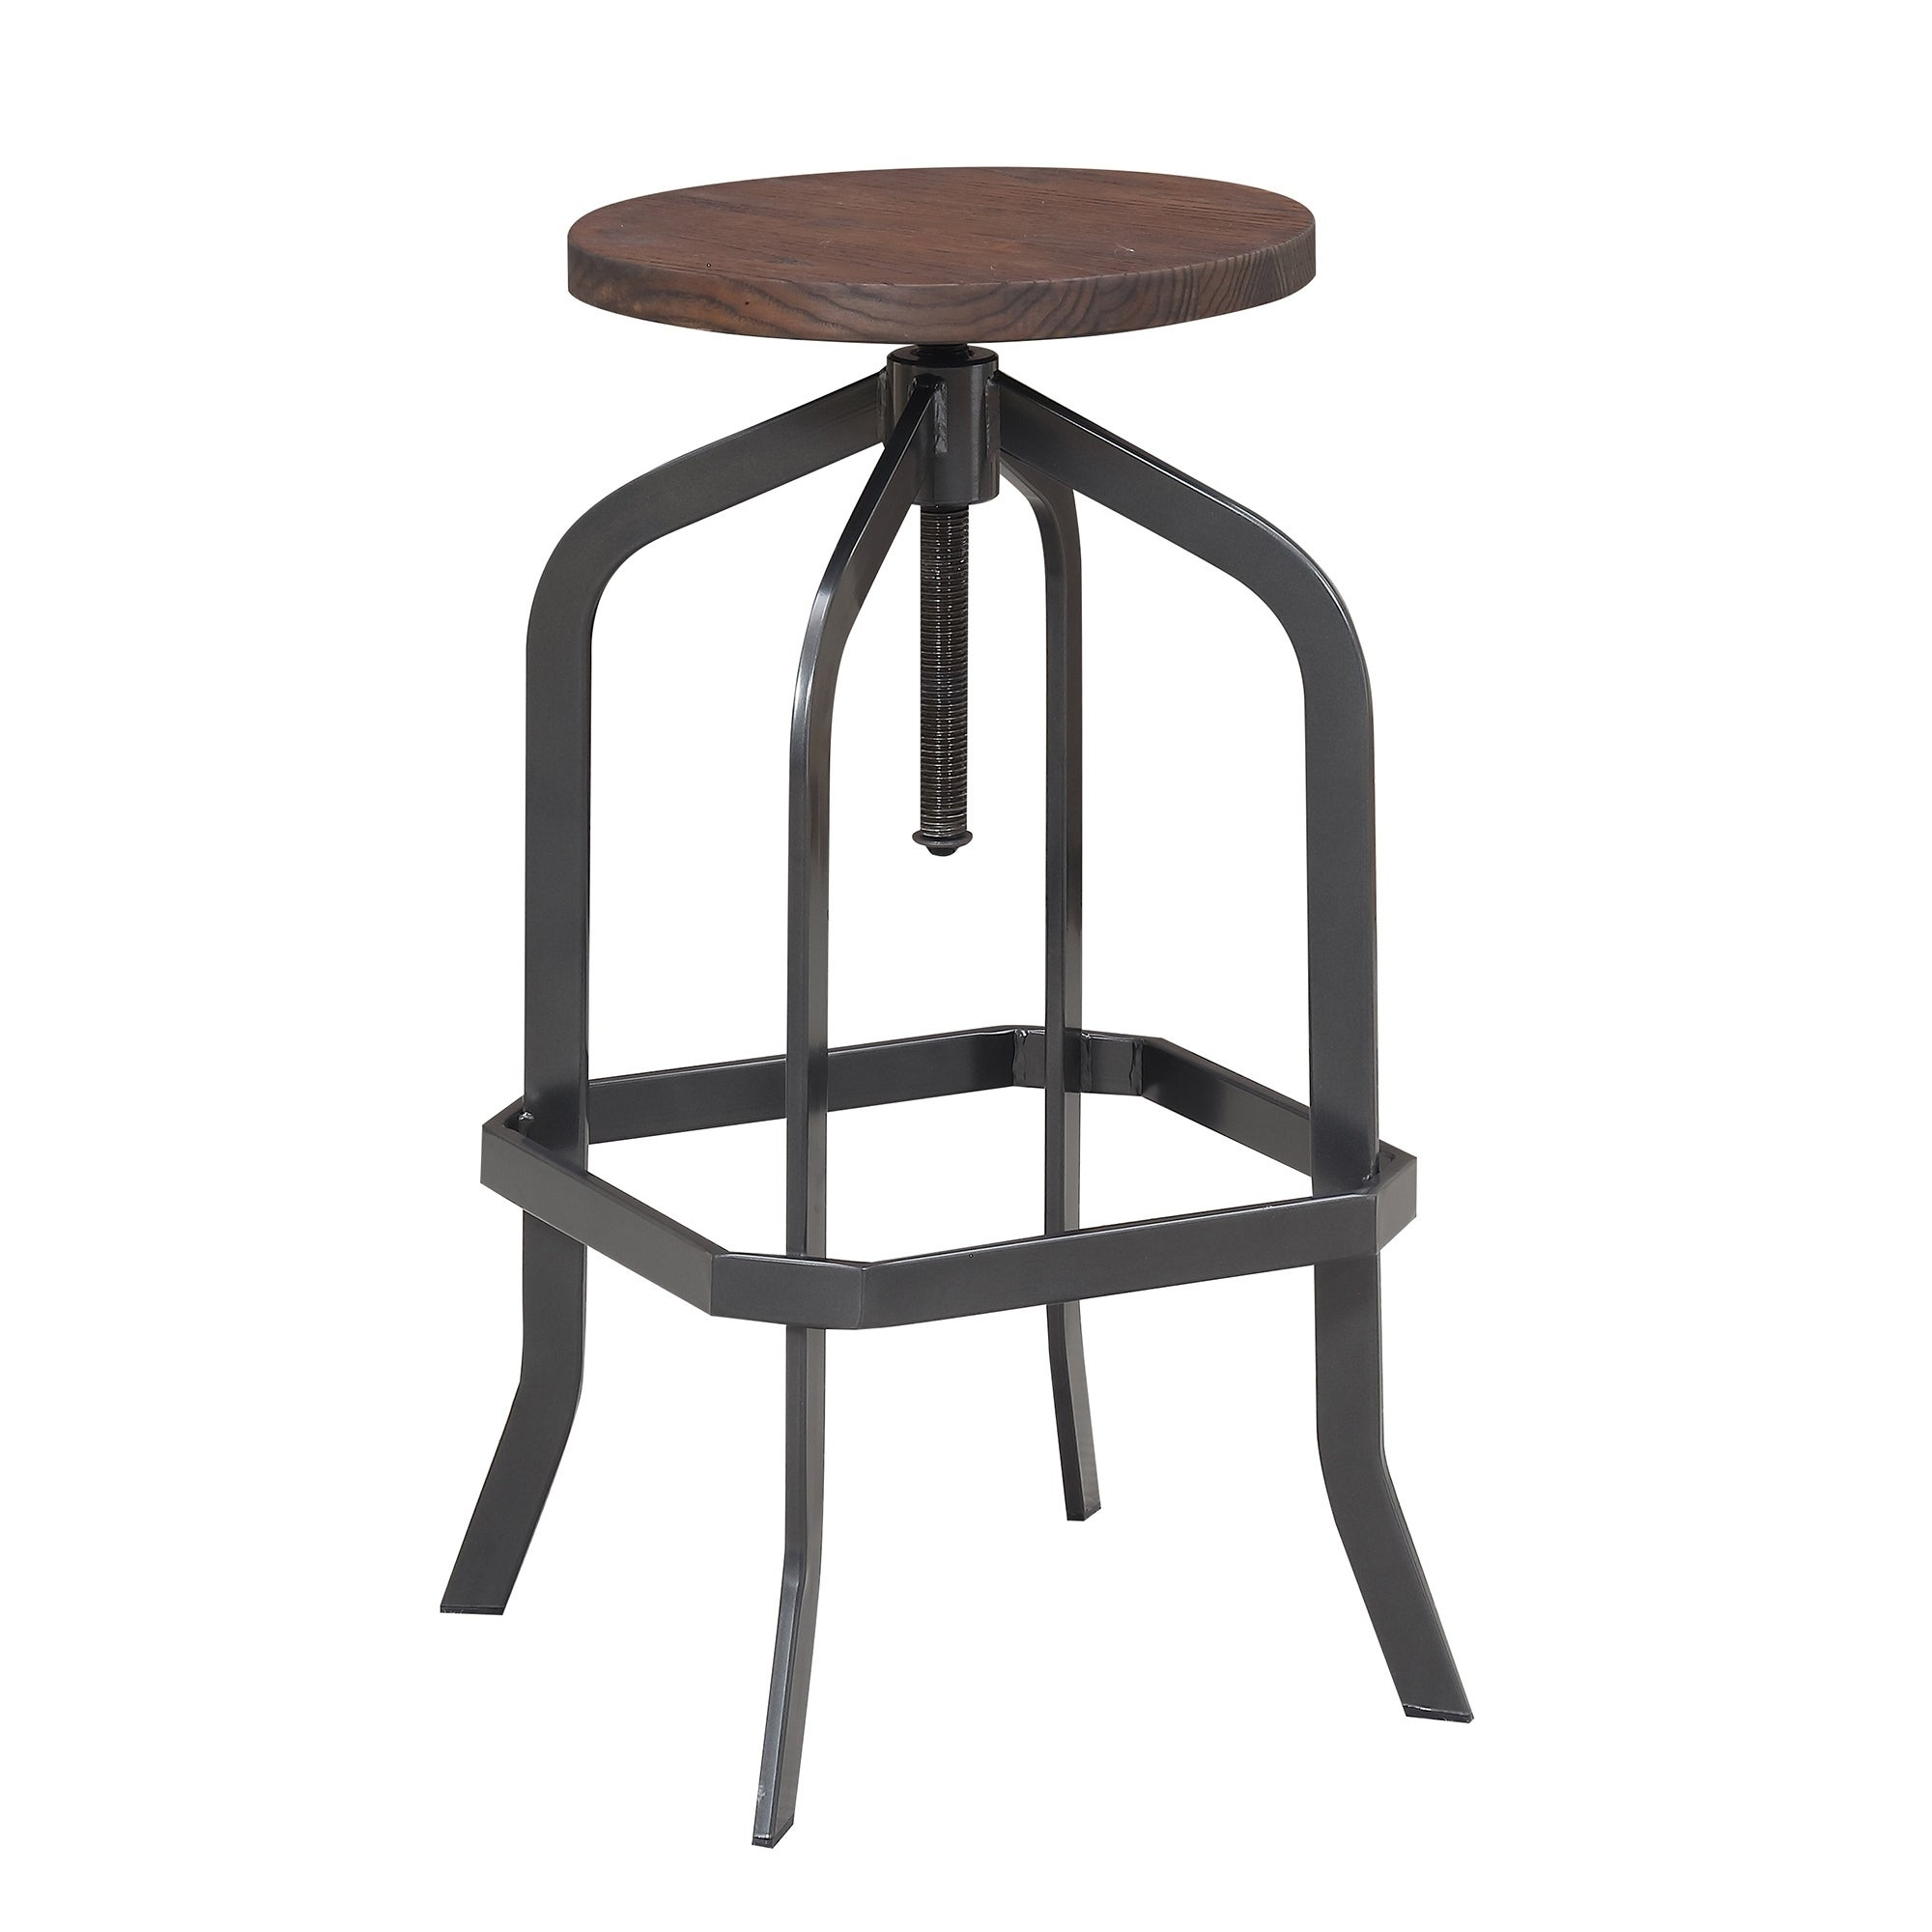 Fantastic Picket House Furnishings Court Adjustable Backless Bar Stool Machost Co Dining Chair Design Ideas Machostcouk